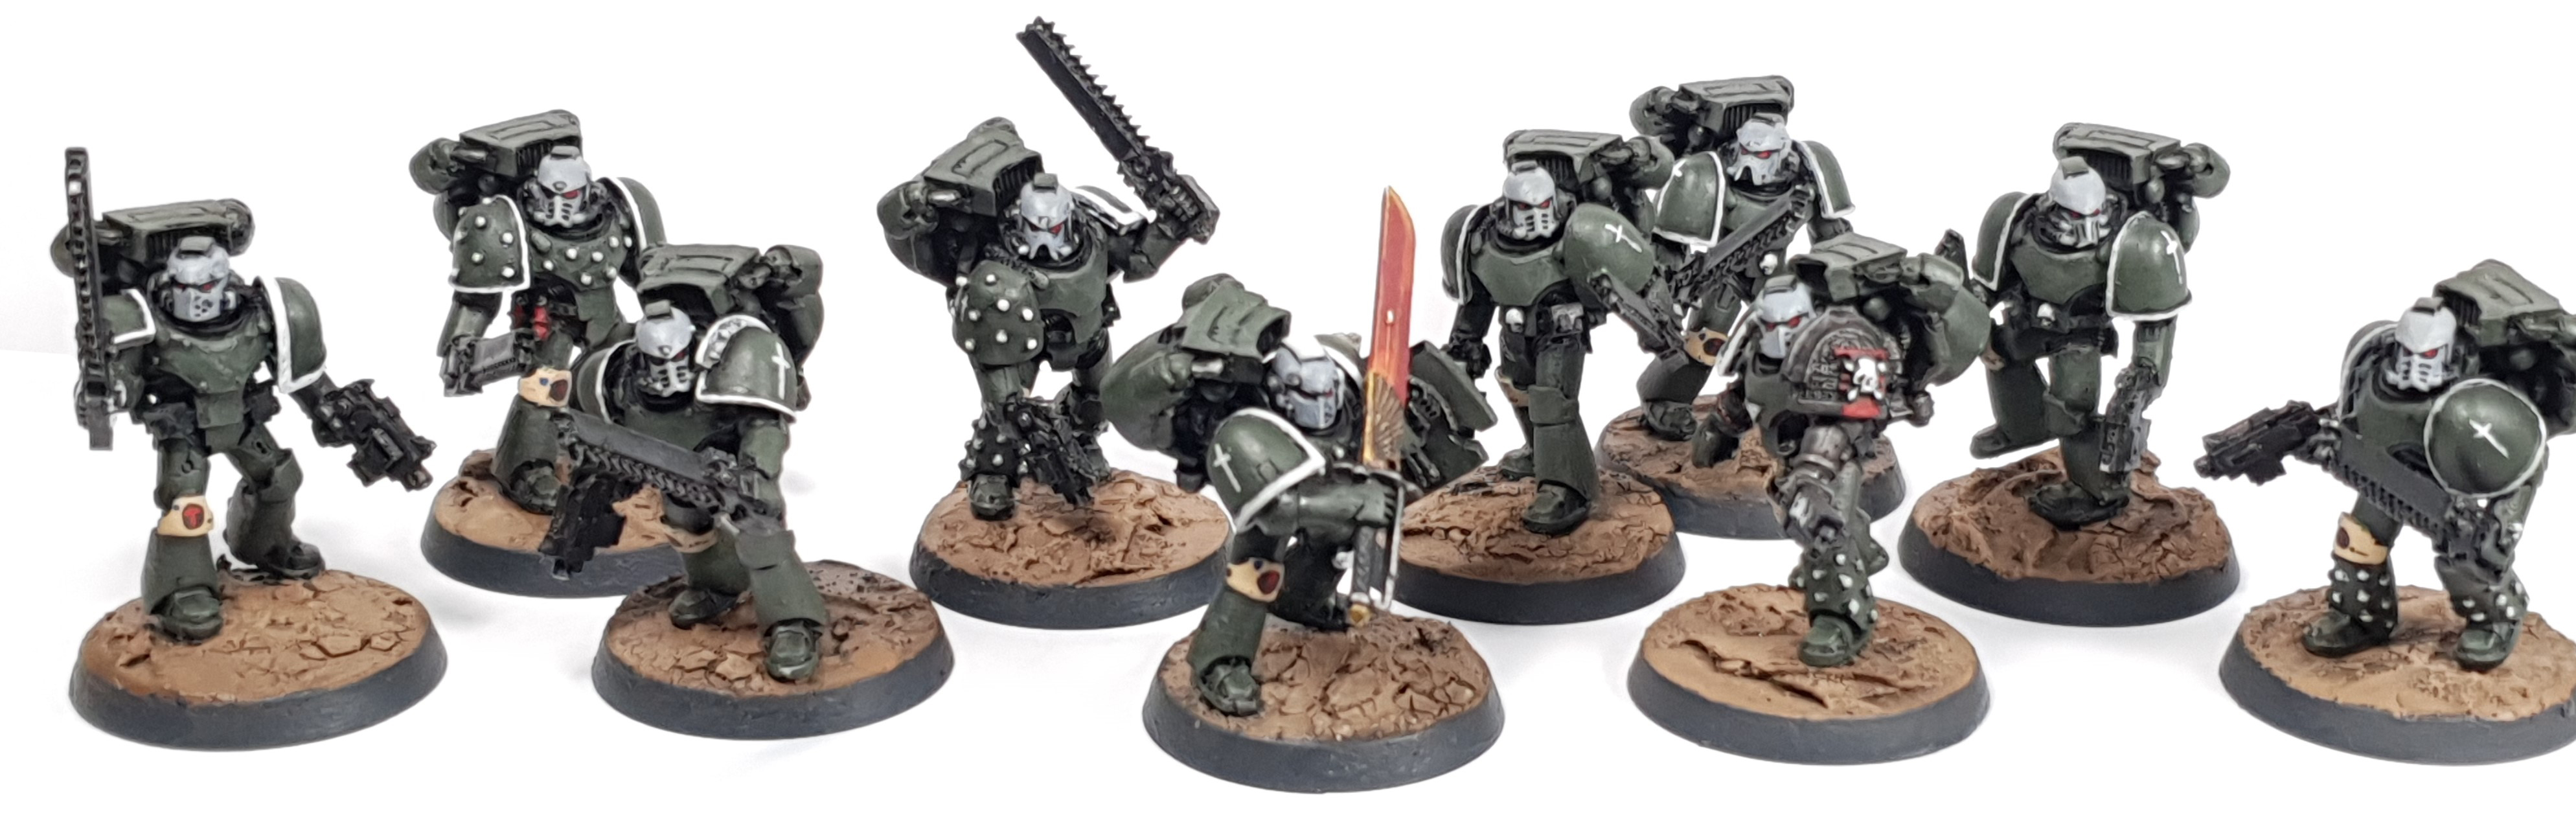 Space Marine Vanguard